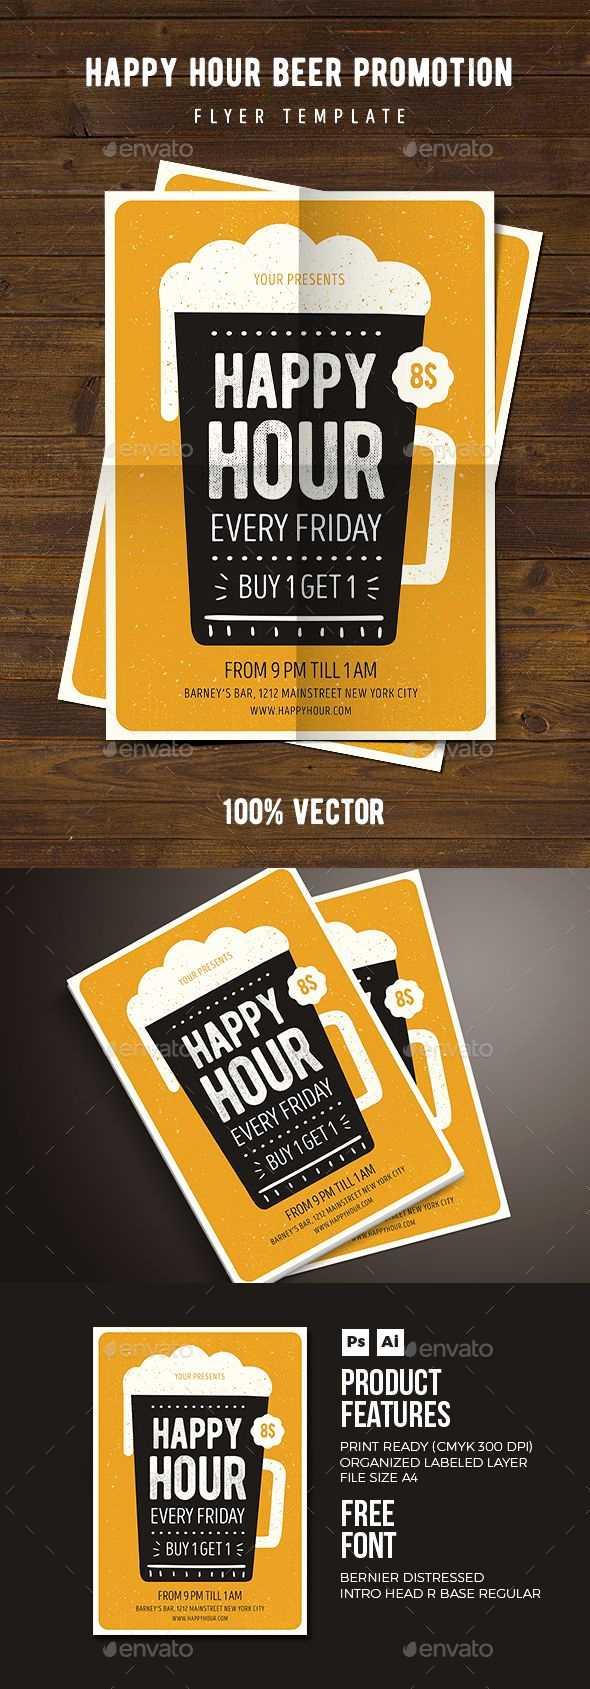 Happy Hour Menu Template New the 25 Best Happy Hour Quotes Ideas On Pinterest